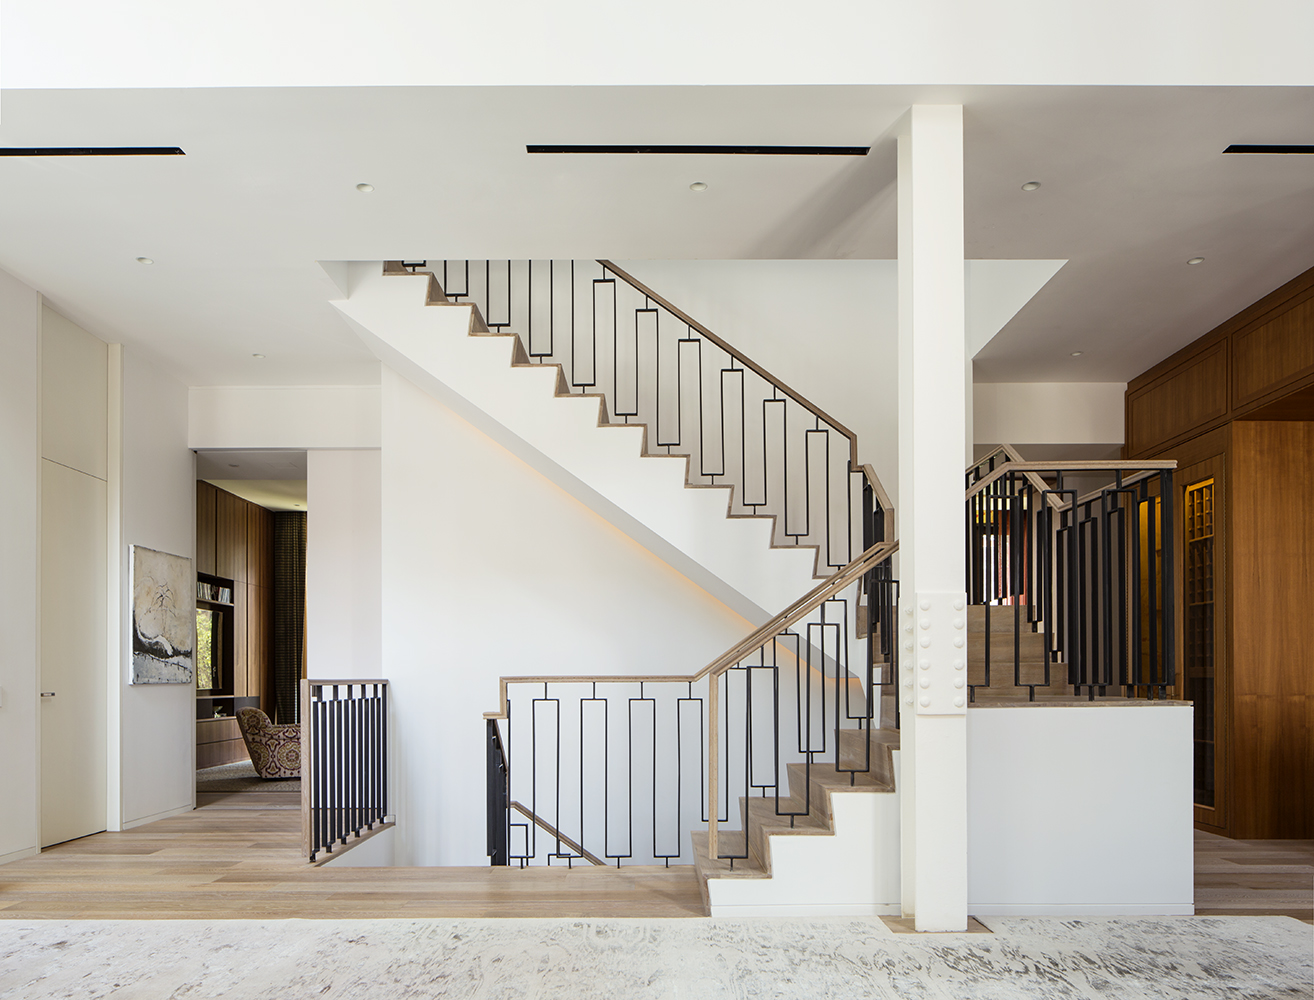 geometric-stairs-staircase-stair-railing-1100architect-cococozy-1